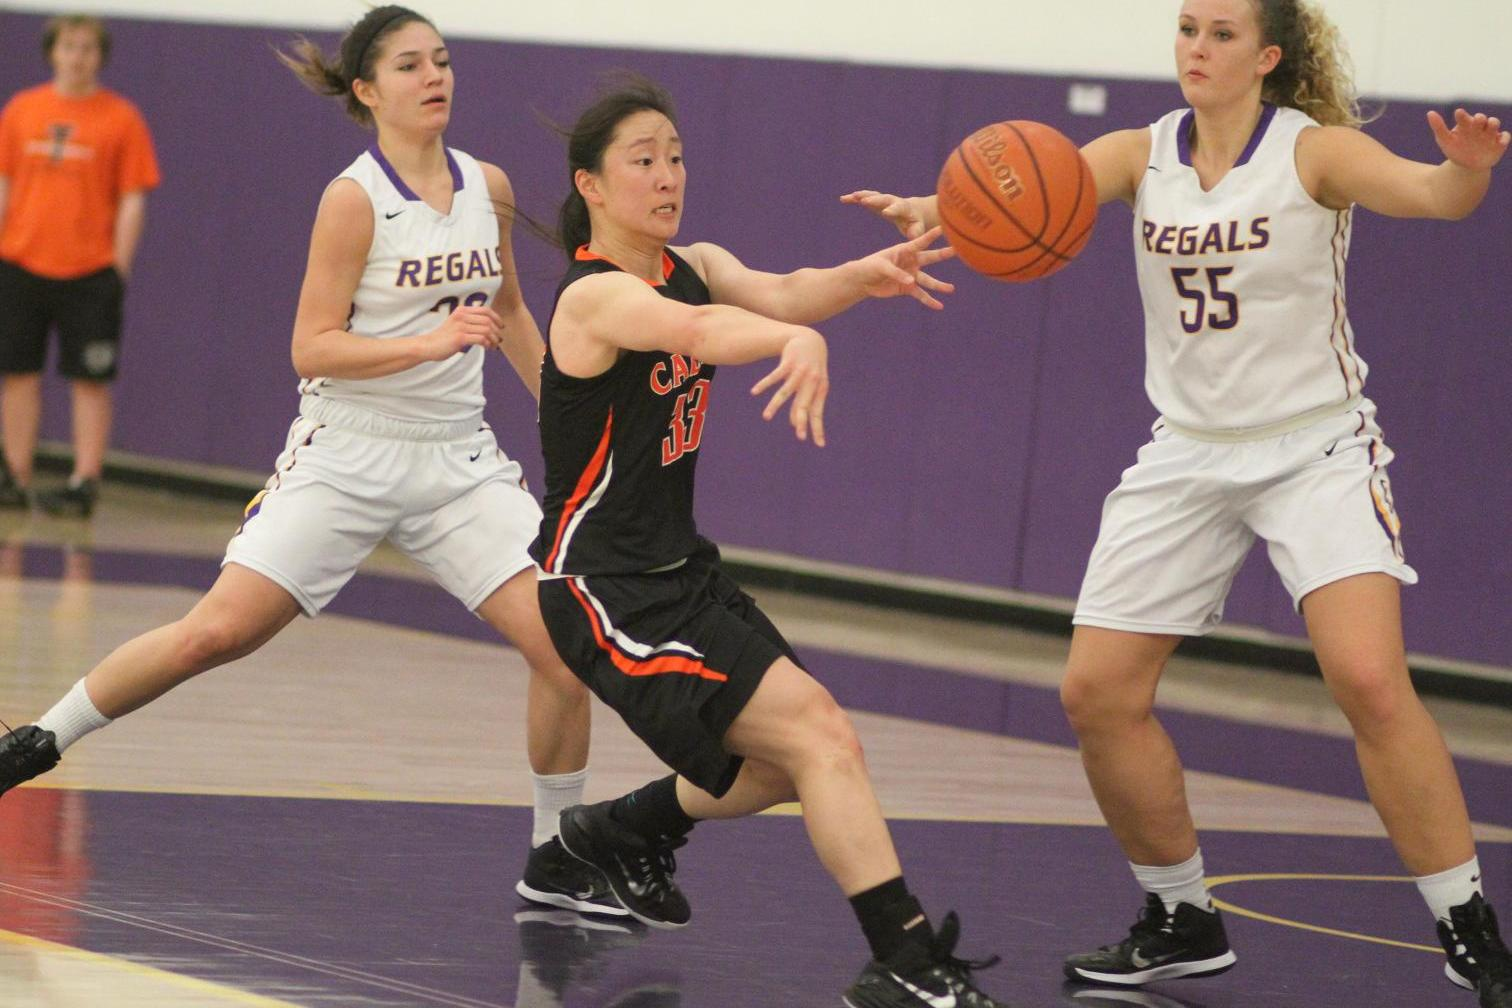 Wong Explodes for 24 Points in Opener Against Linfield